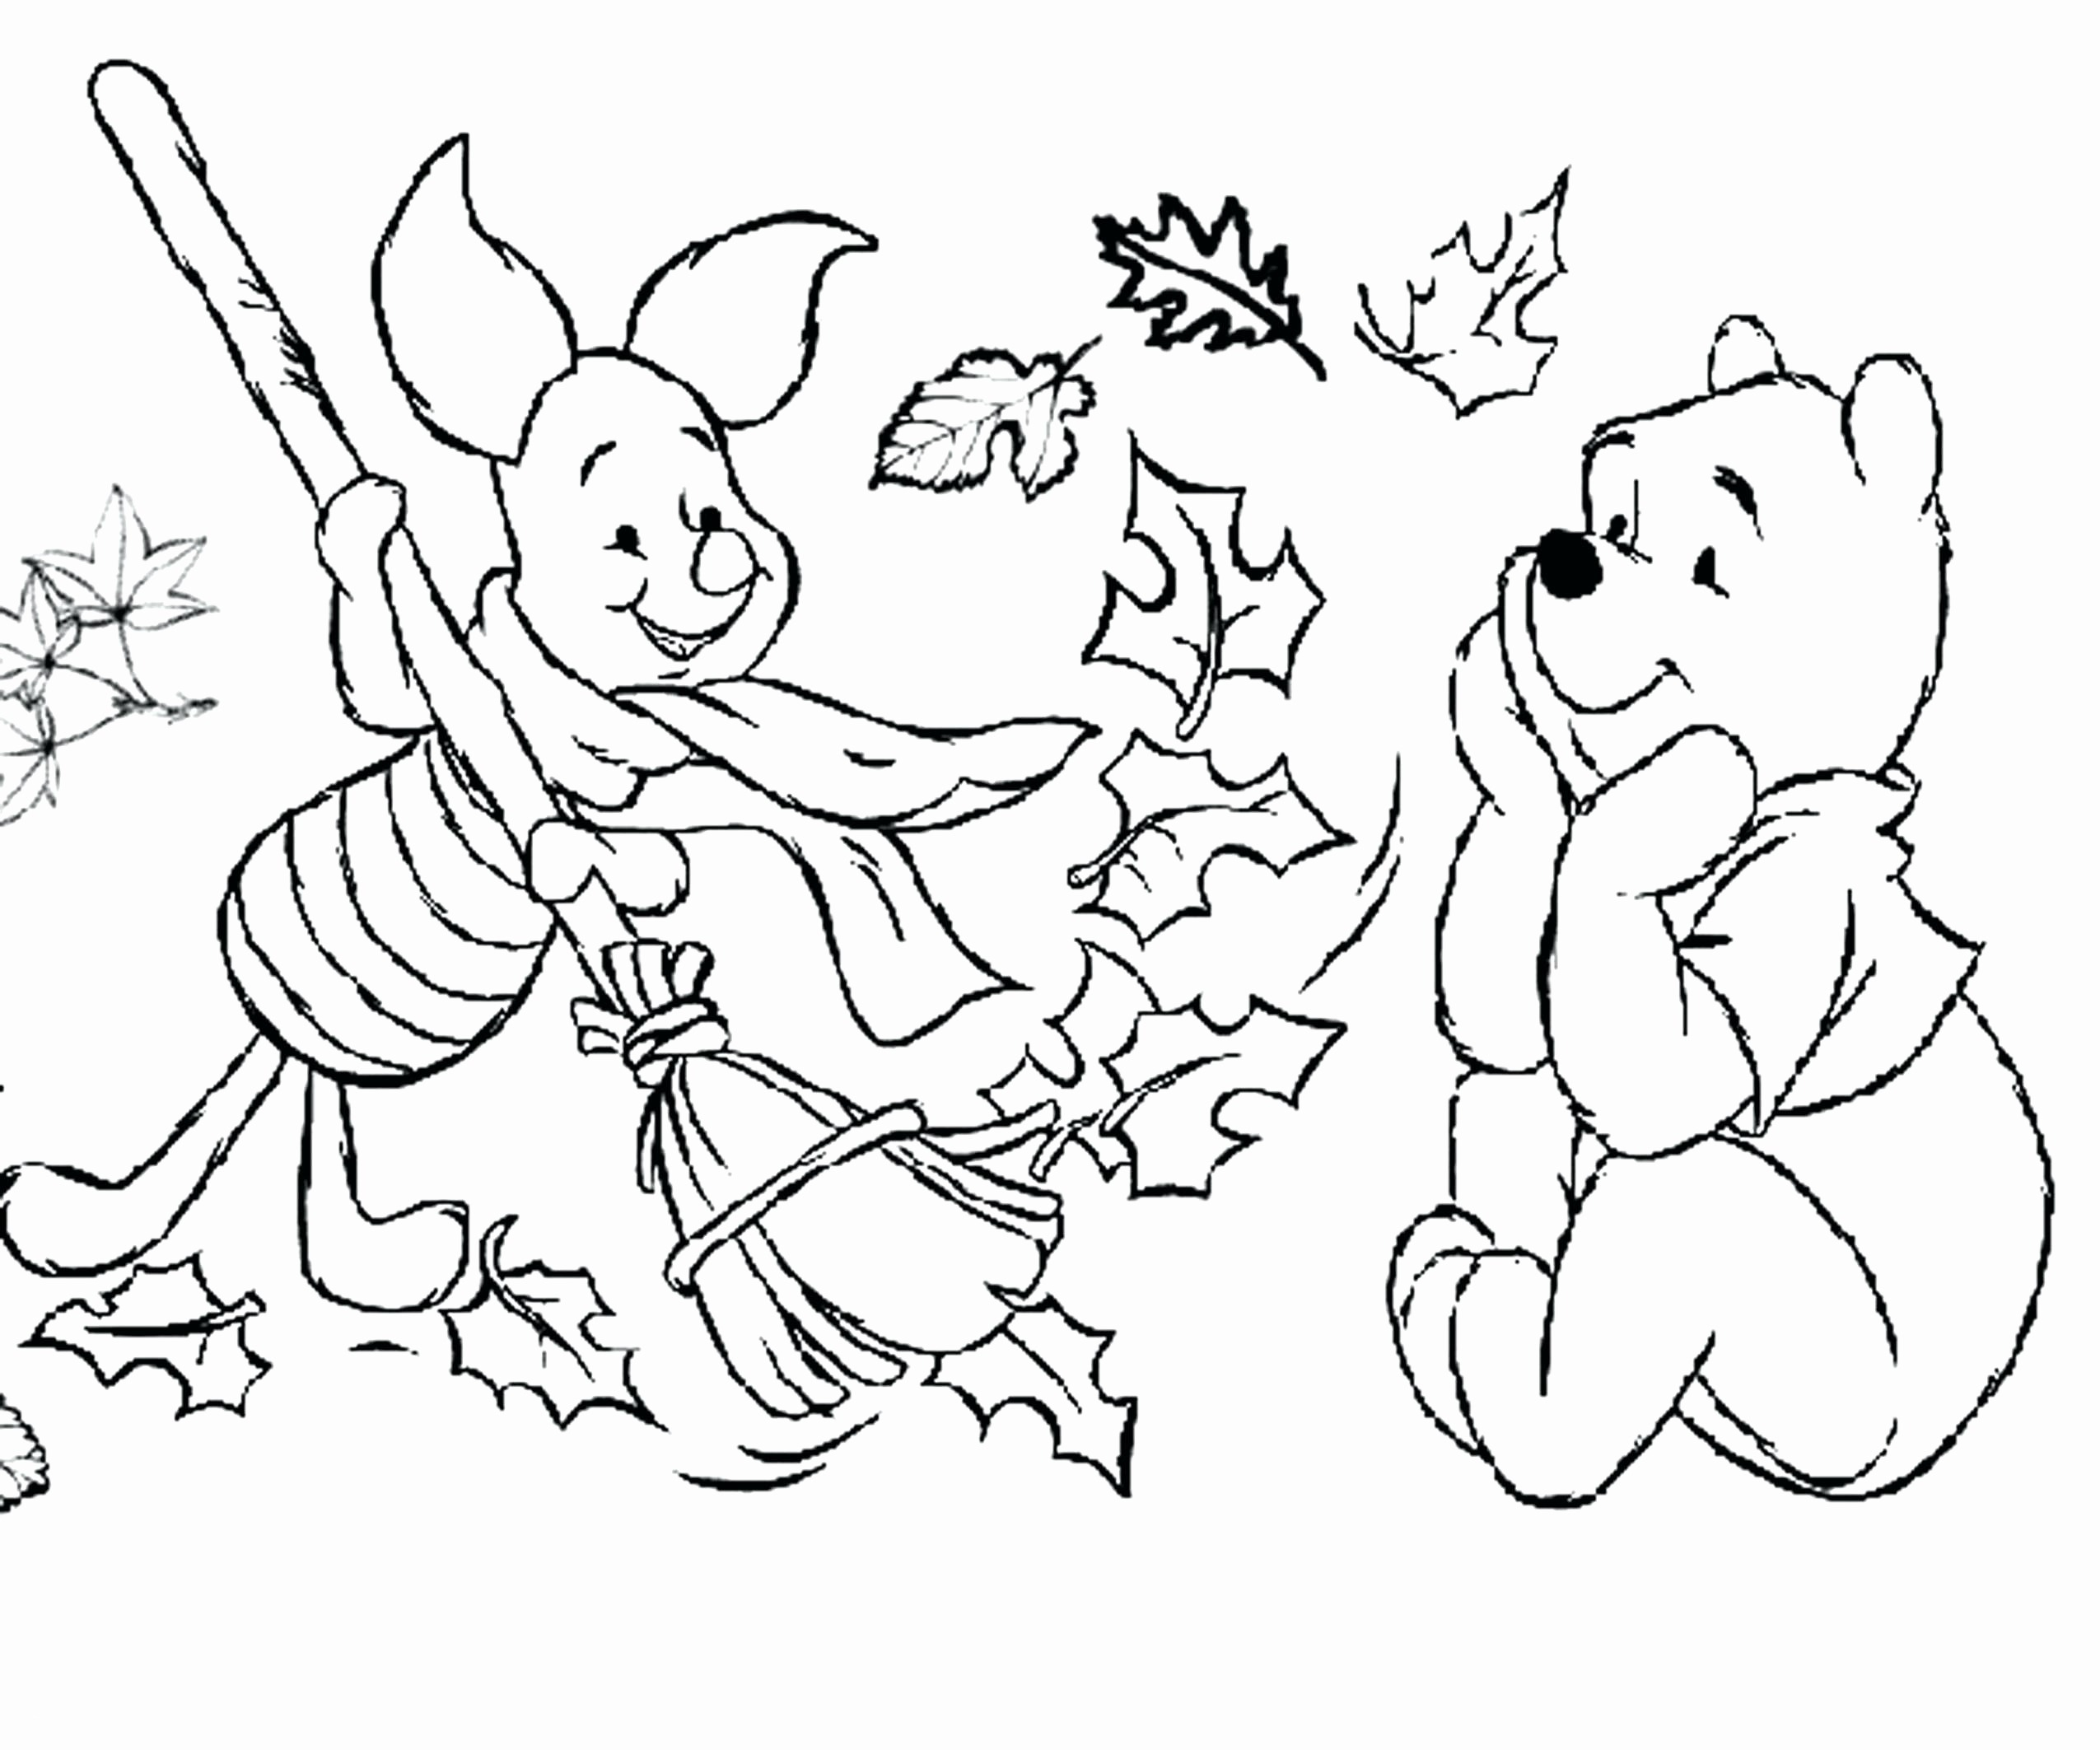 queen coloring pages Download-Friend Coloring Page Family Picture Coloring Luxury Colouring Family C3 82 C2 A0 0d Free 7-c